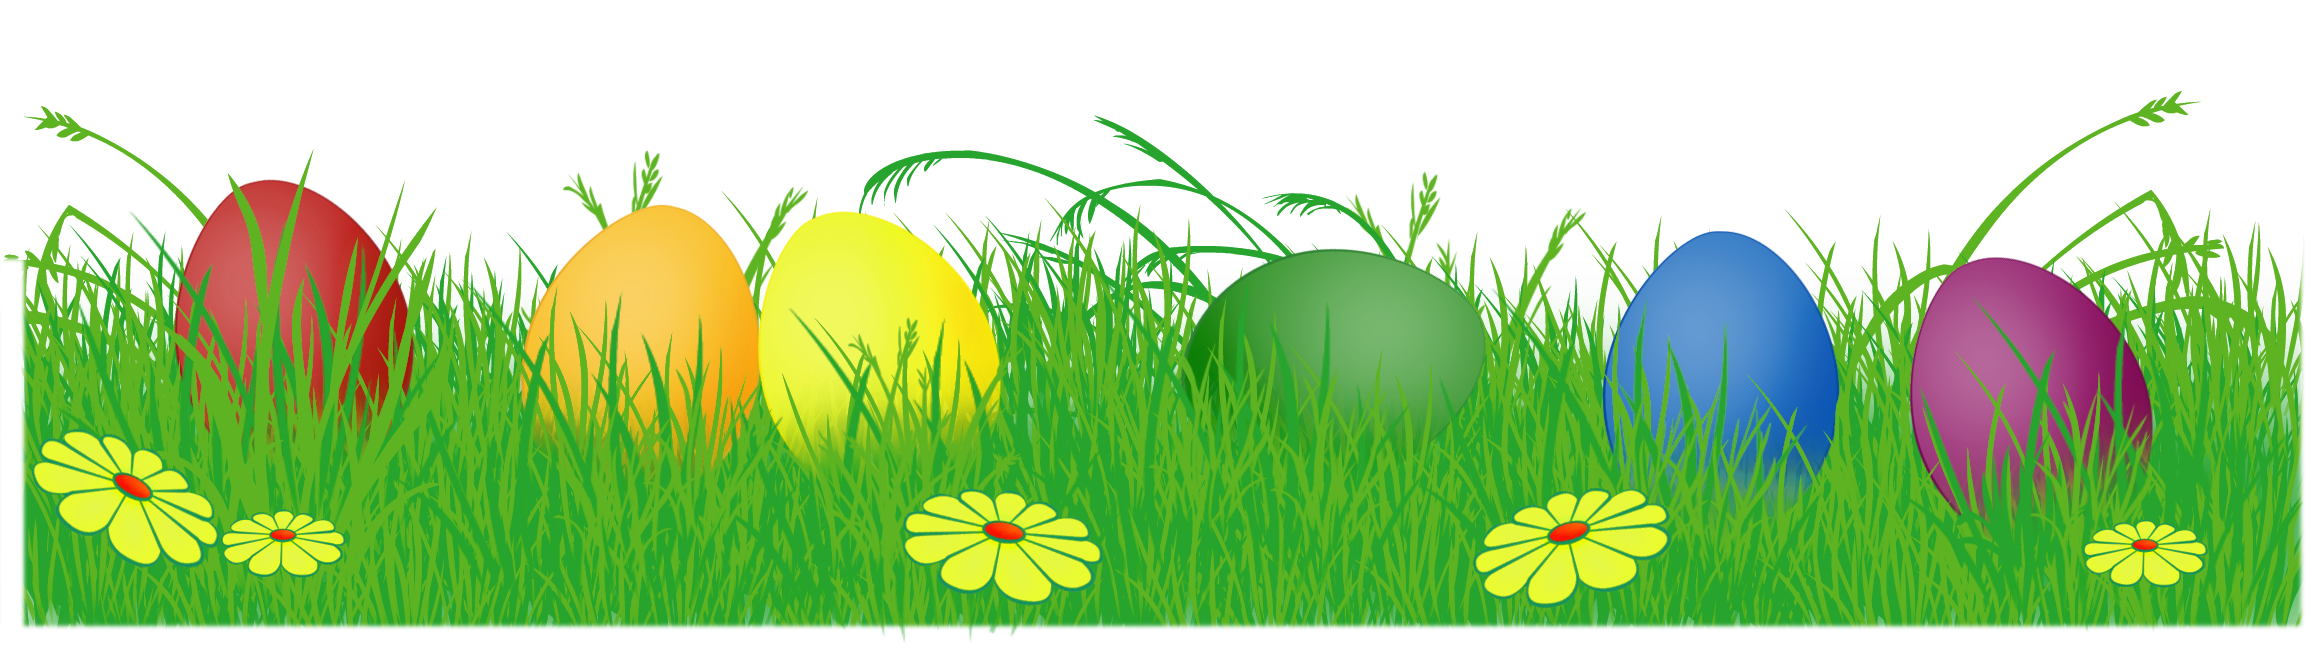 Easter Eggs İn Grass Png - Download Easter Eggs In Grass PNG - Free Transparent PNG Images ...